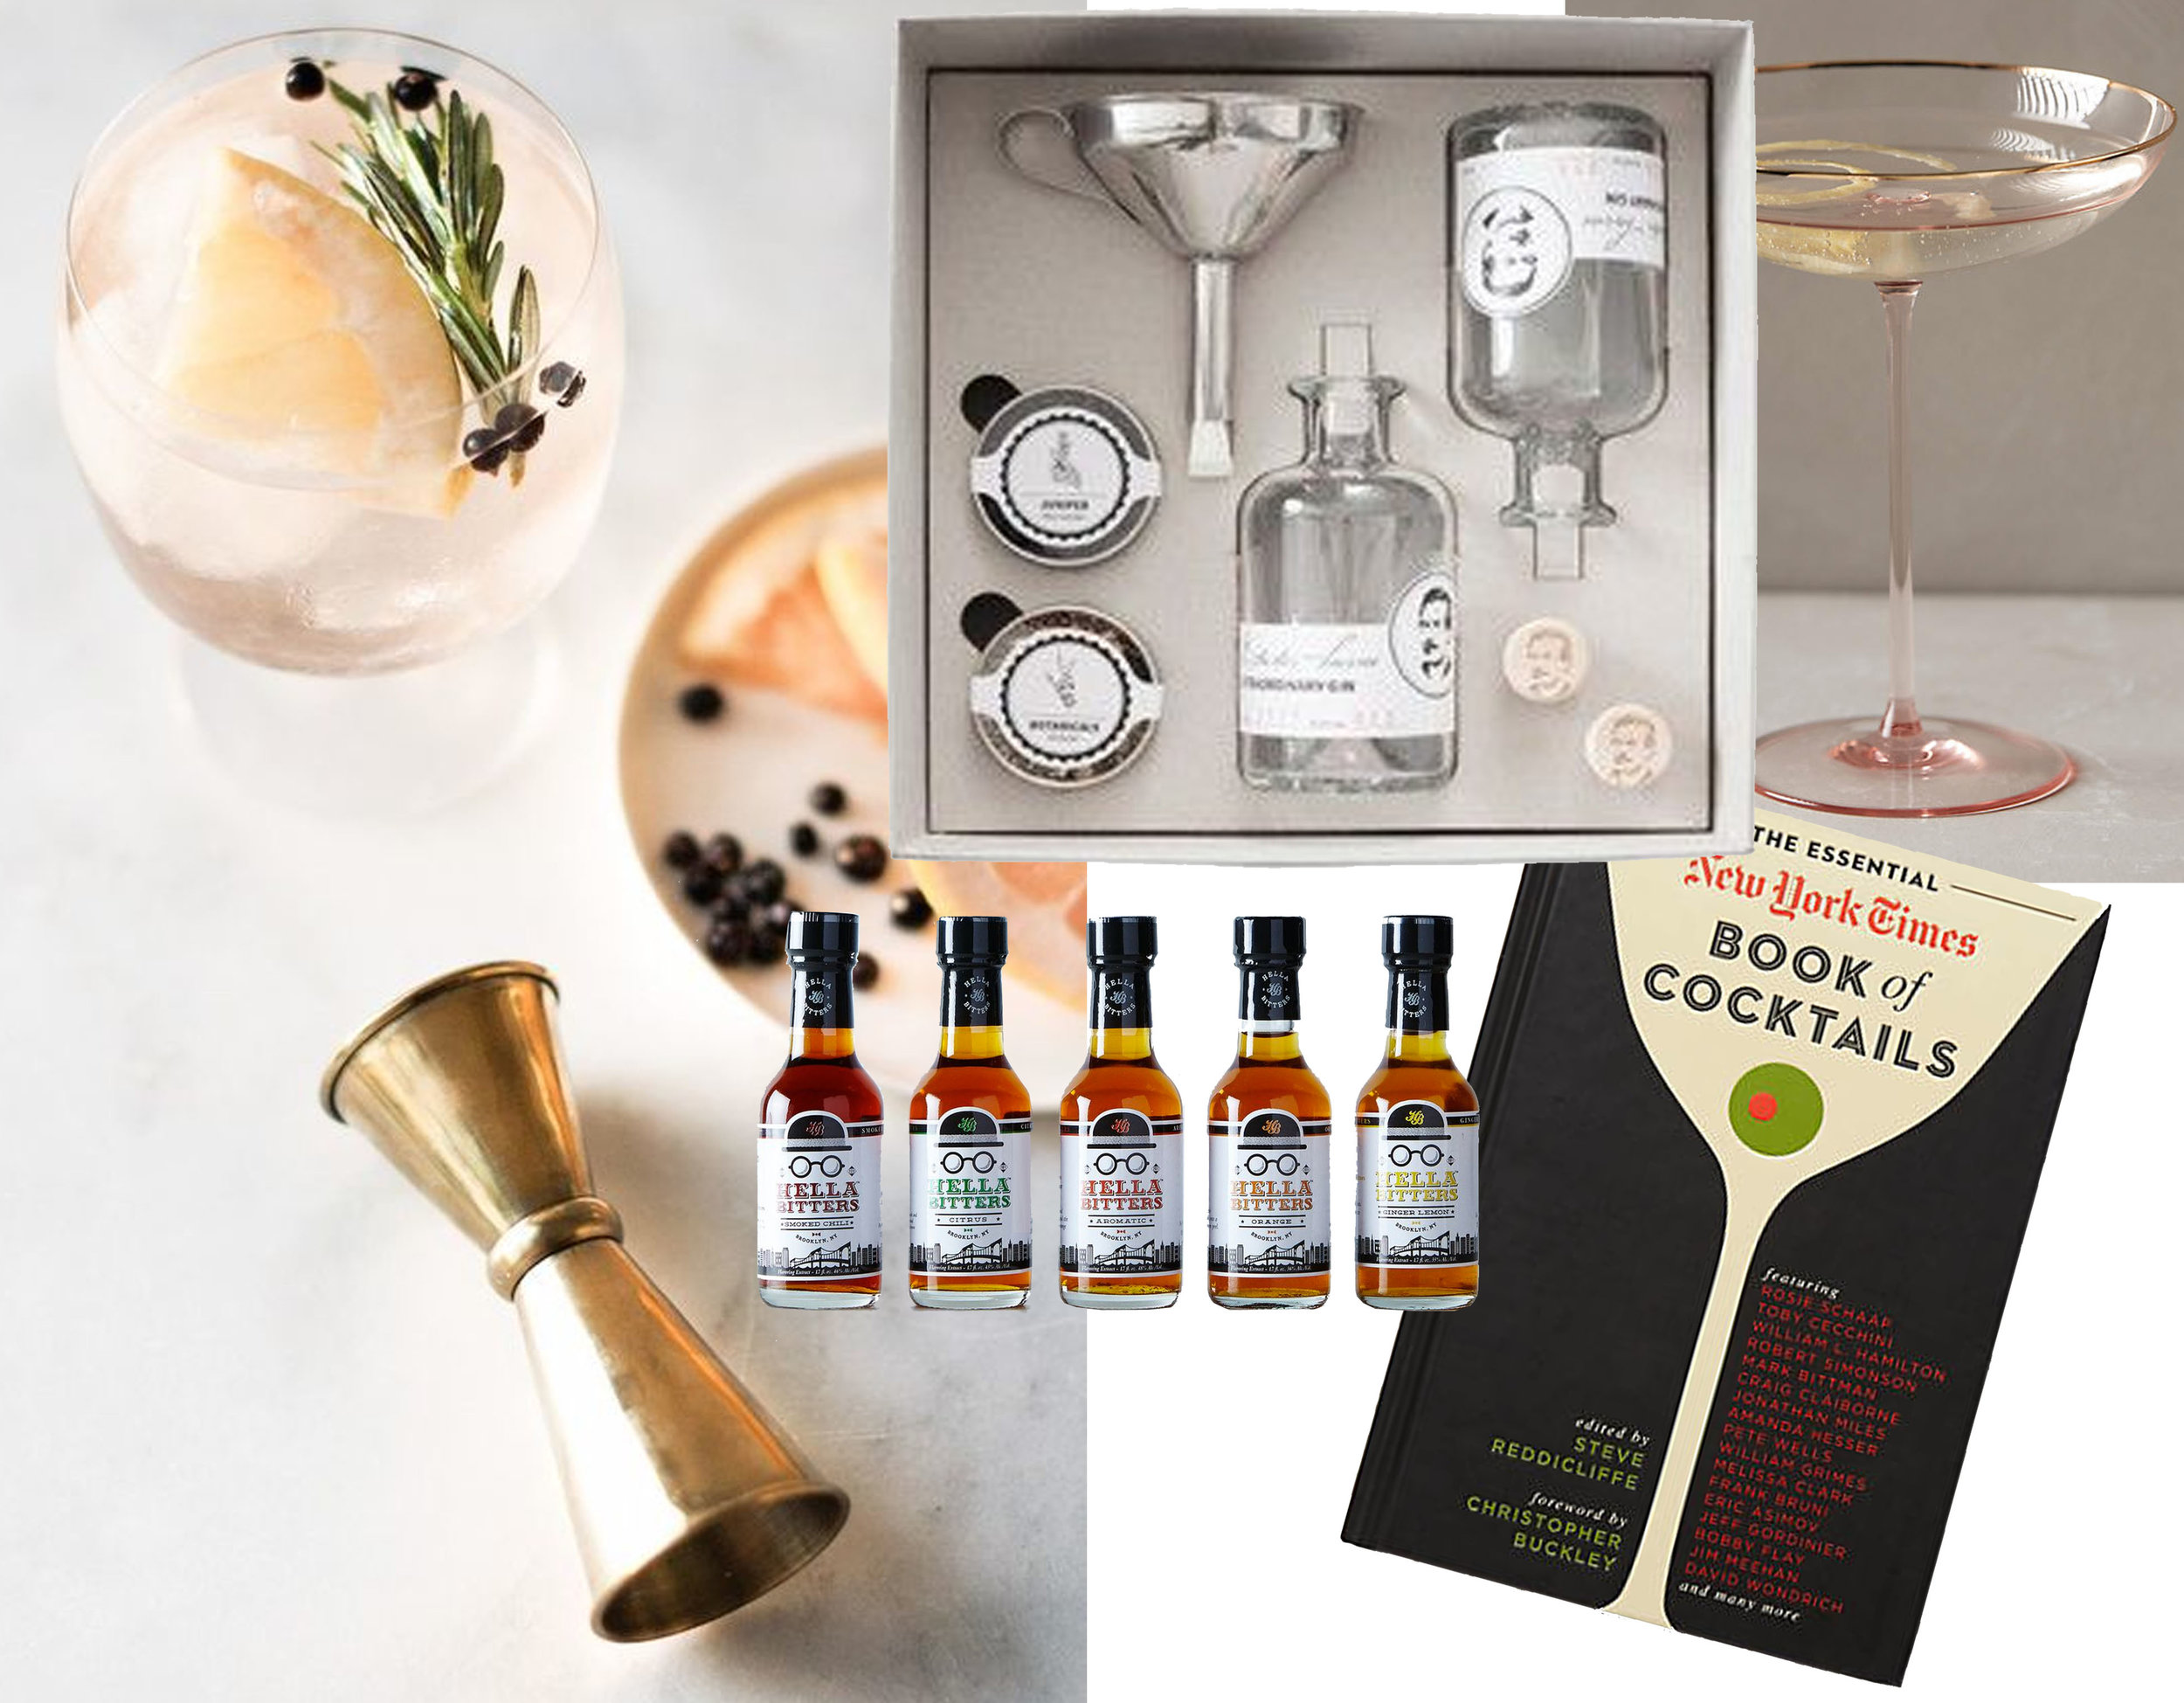 image cocktail via  Craft + Cocktails  -  Dr. Charles Levine  gin kit - Mini Bitters  Food 52  - Book of Coctails  NYTimes